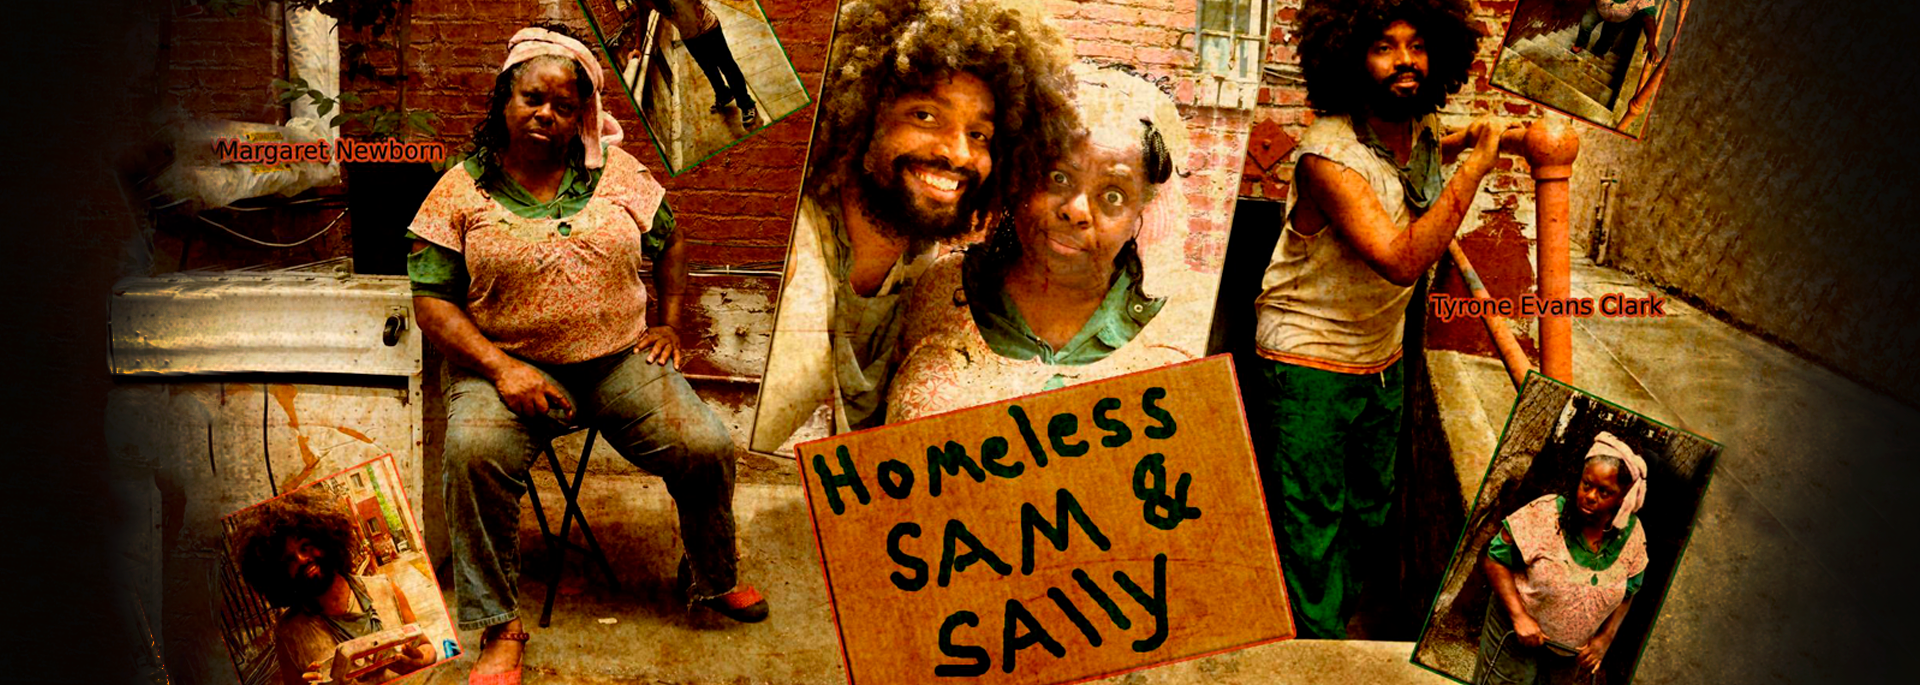 Homeless Sam & Sally channel